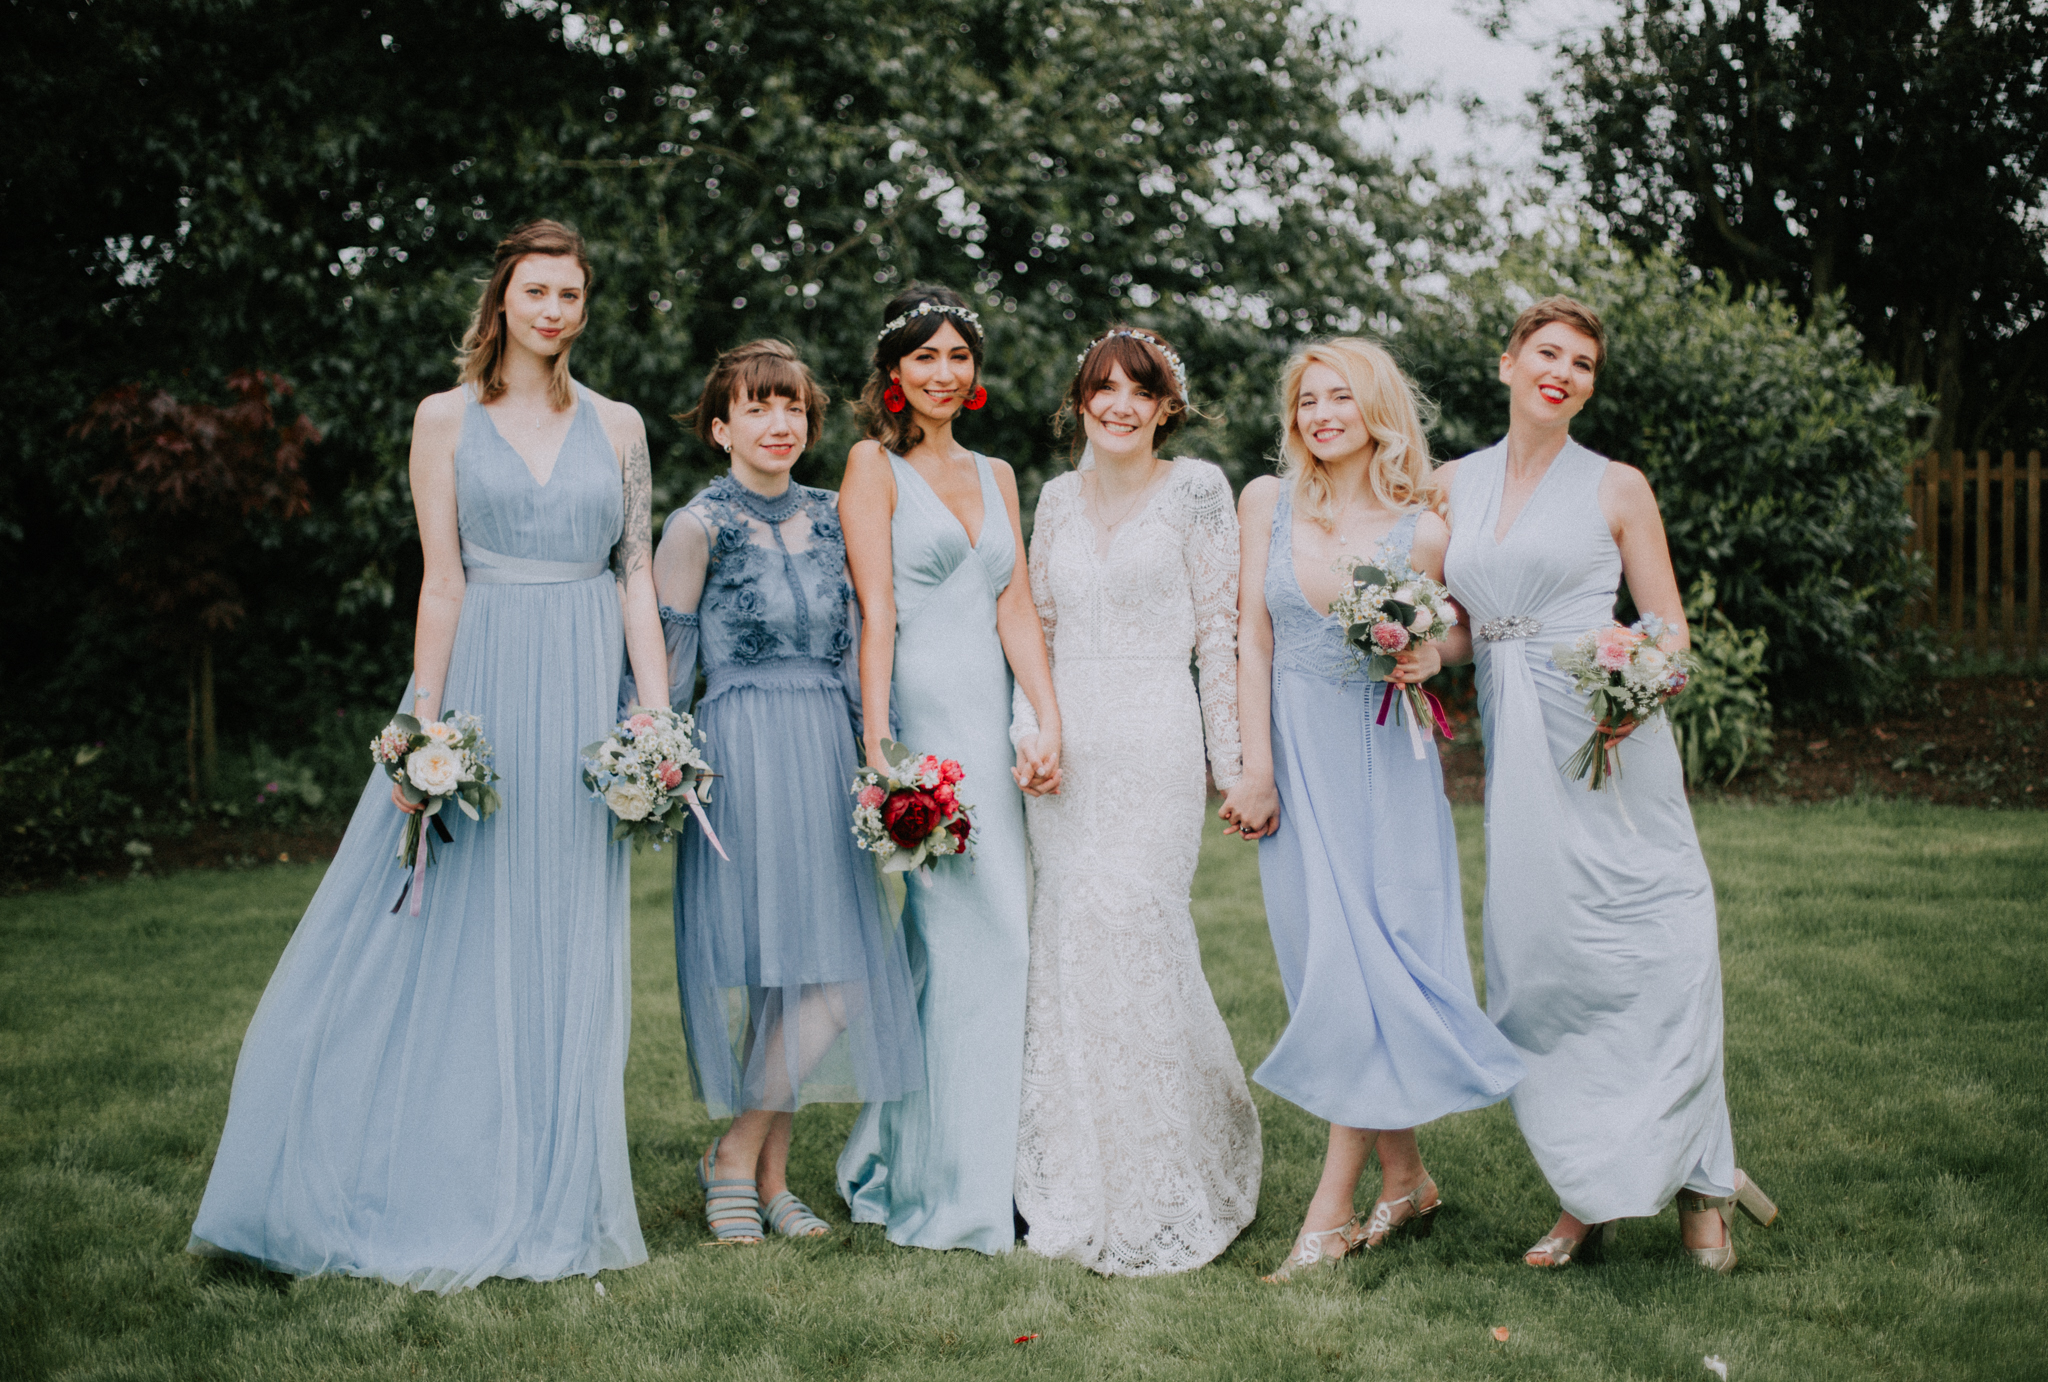 The bohemian bridal party